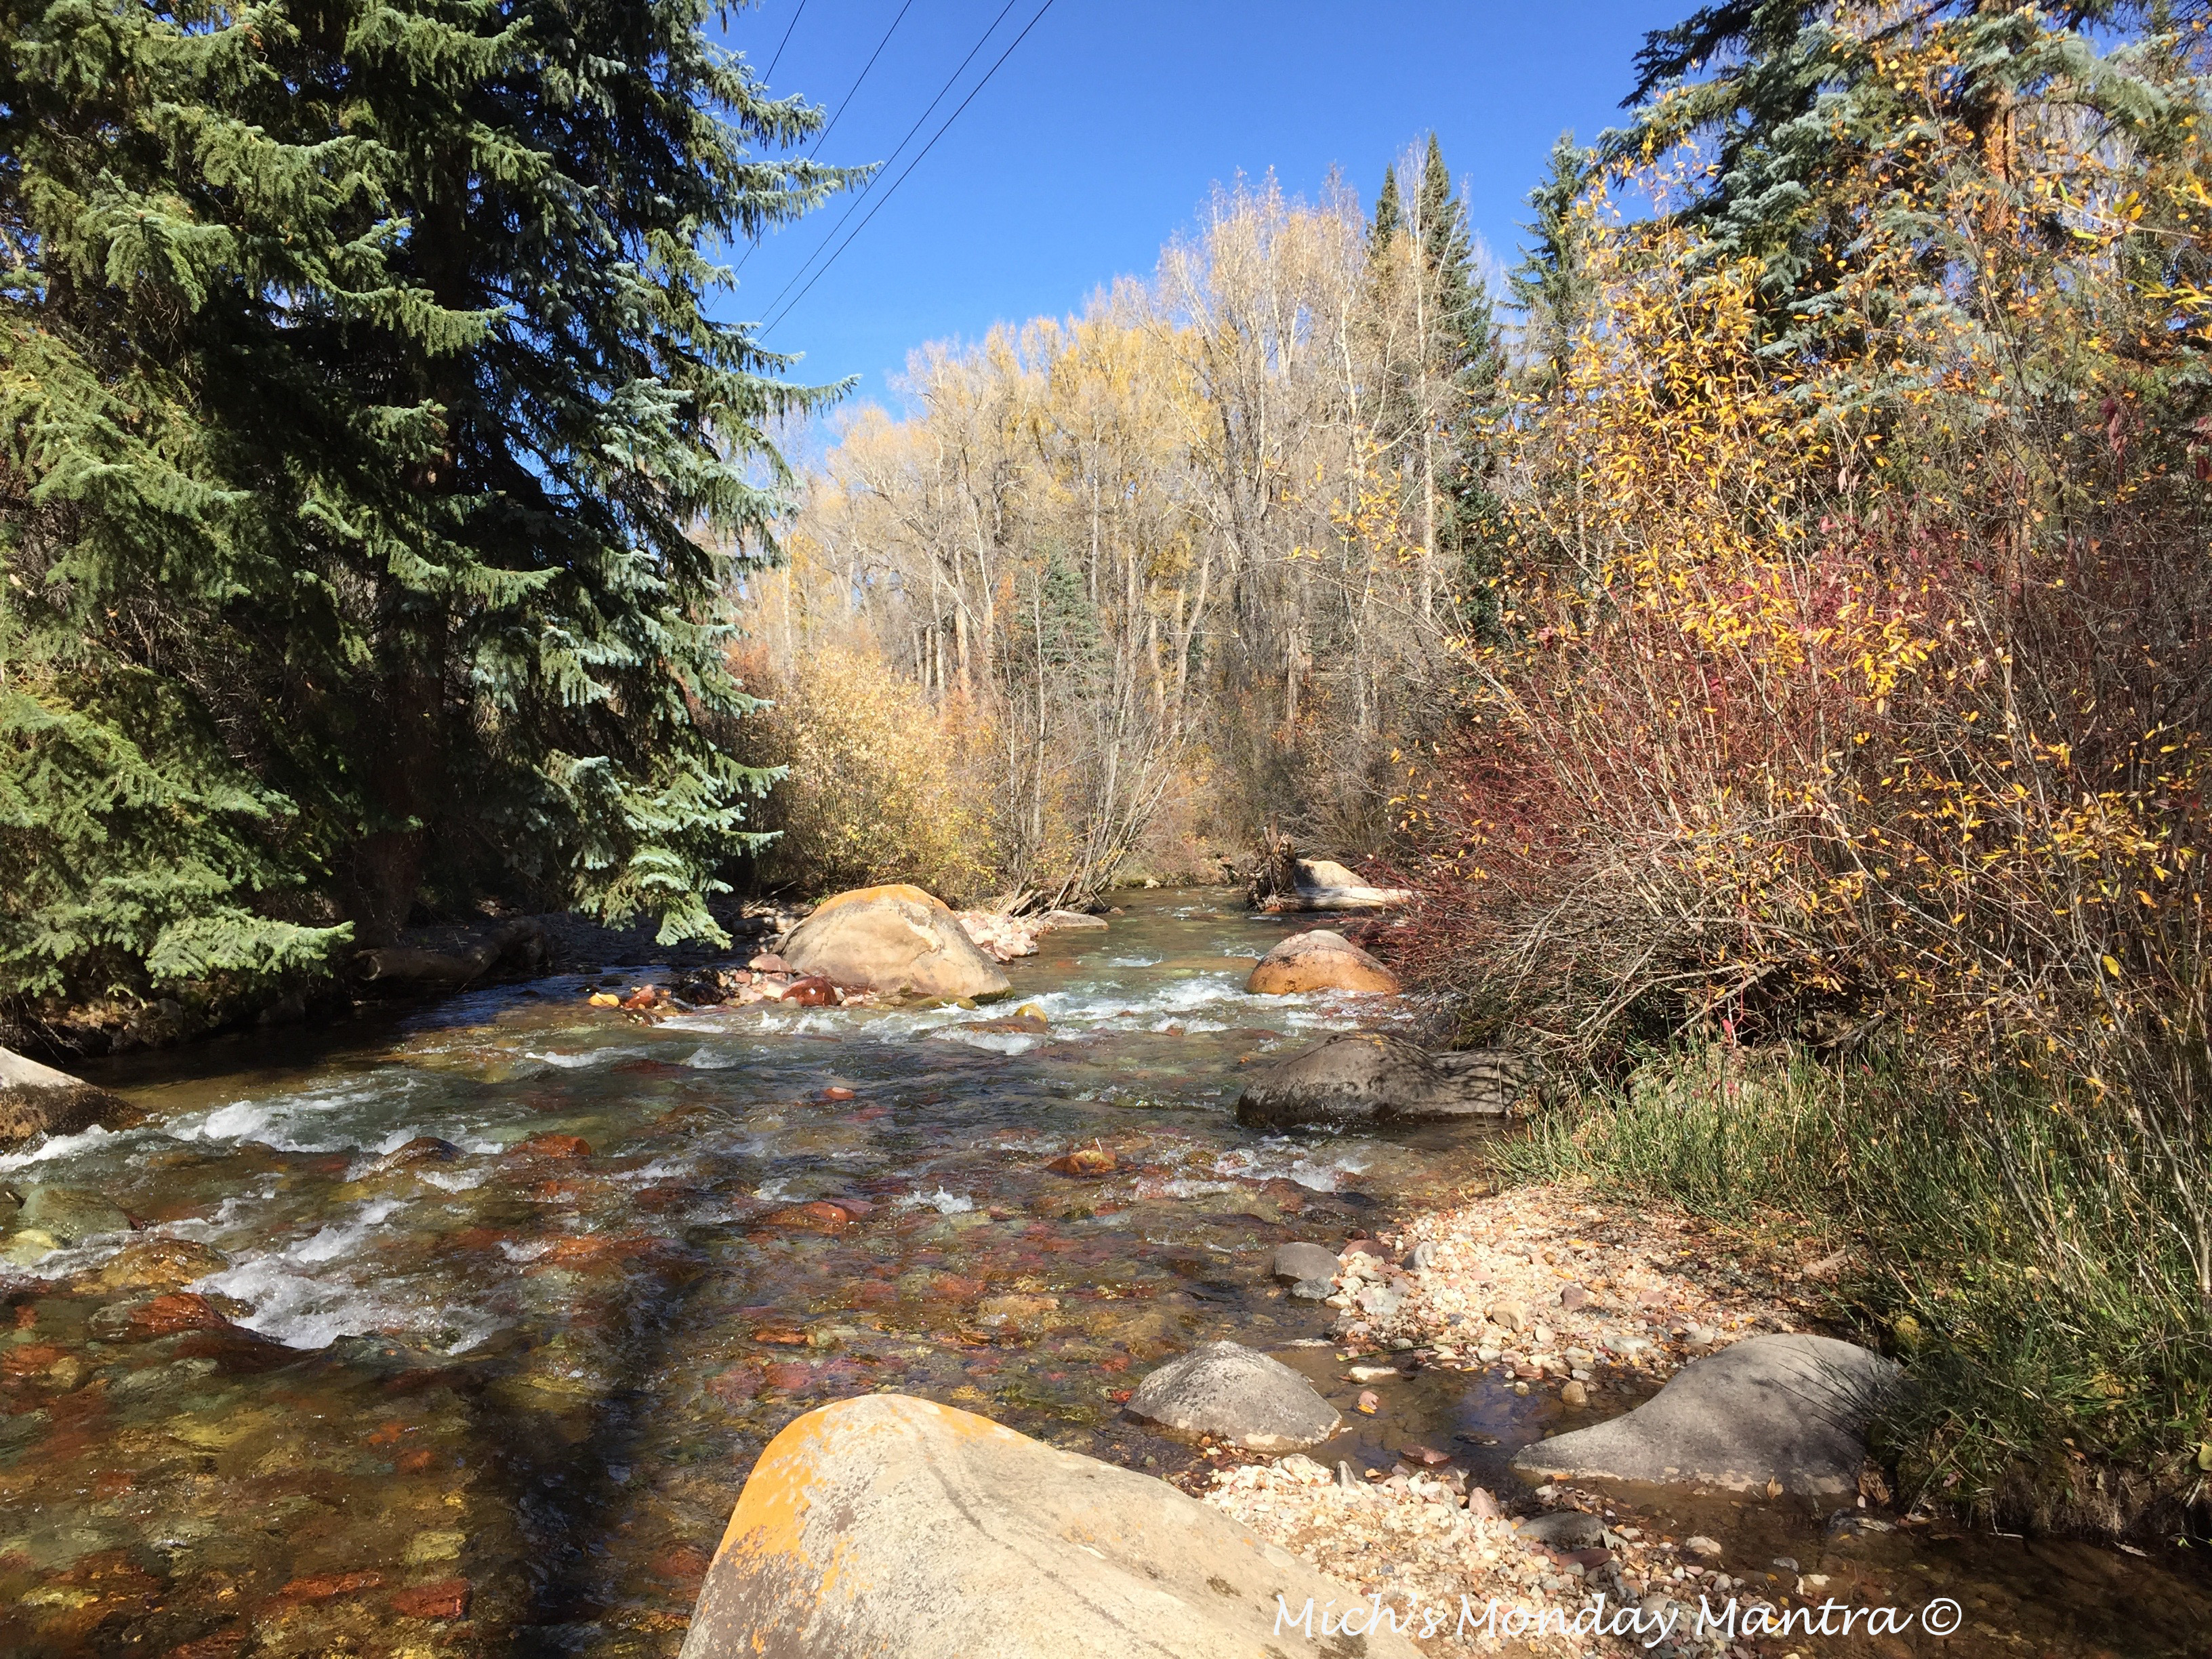 """Mich's Monday Mantra """"Ride The Flow Of The River"""""""